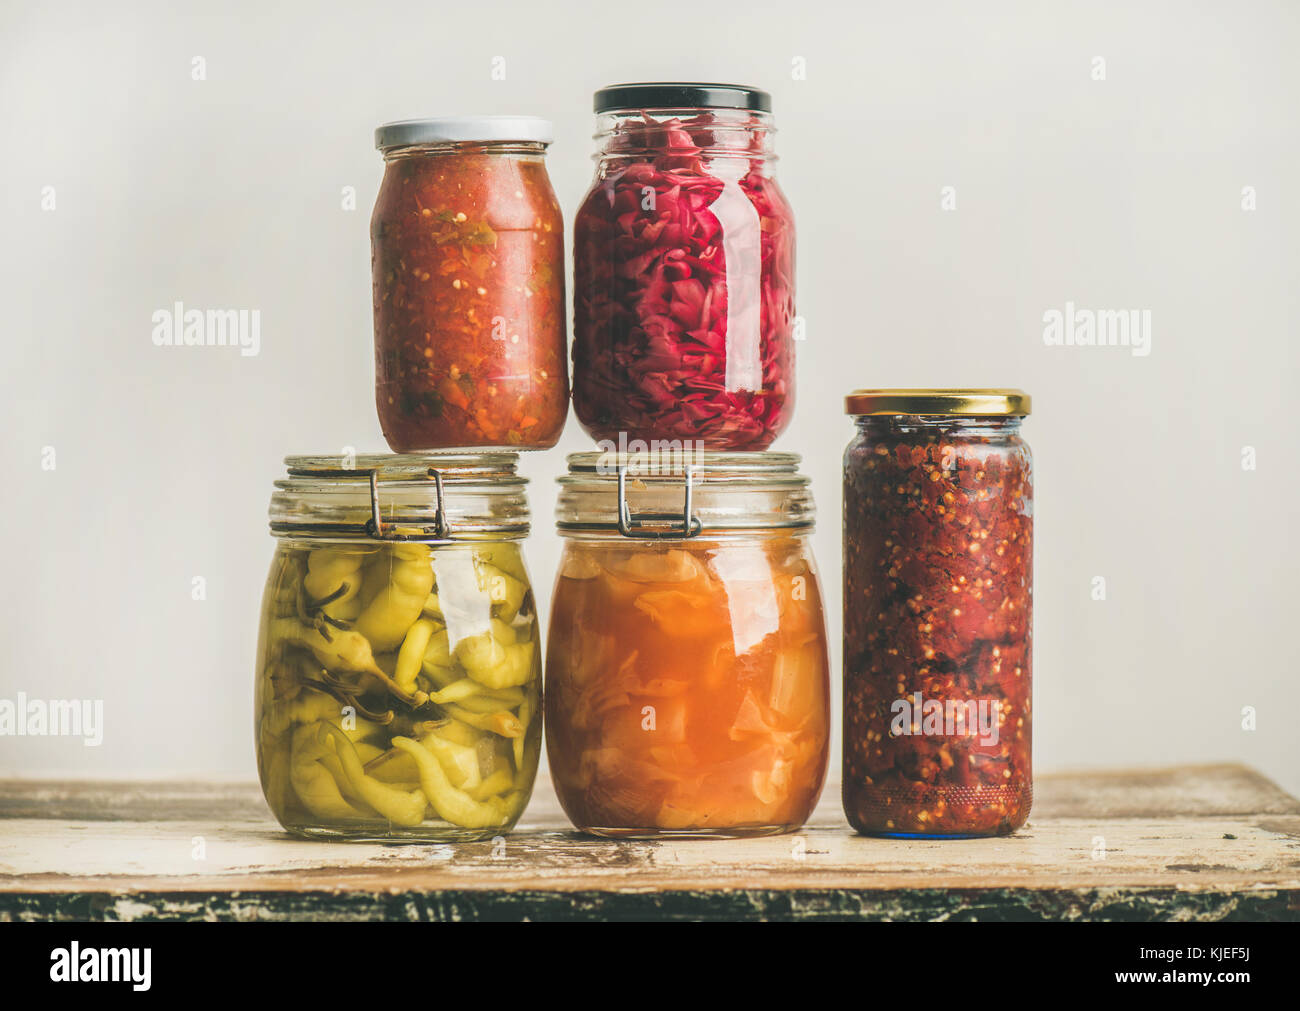 Autumn seasonal pickled or fermented vegetables. Home food preserving - Stock Image